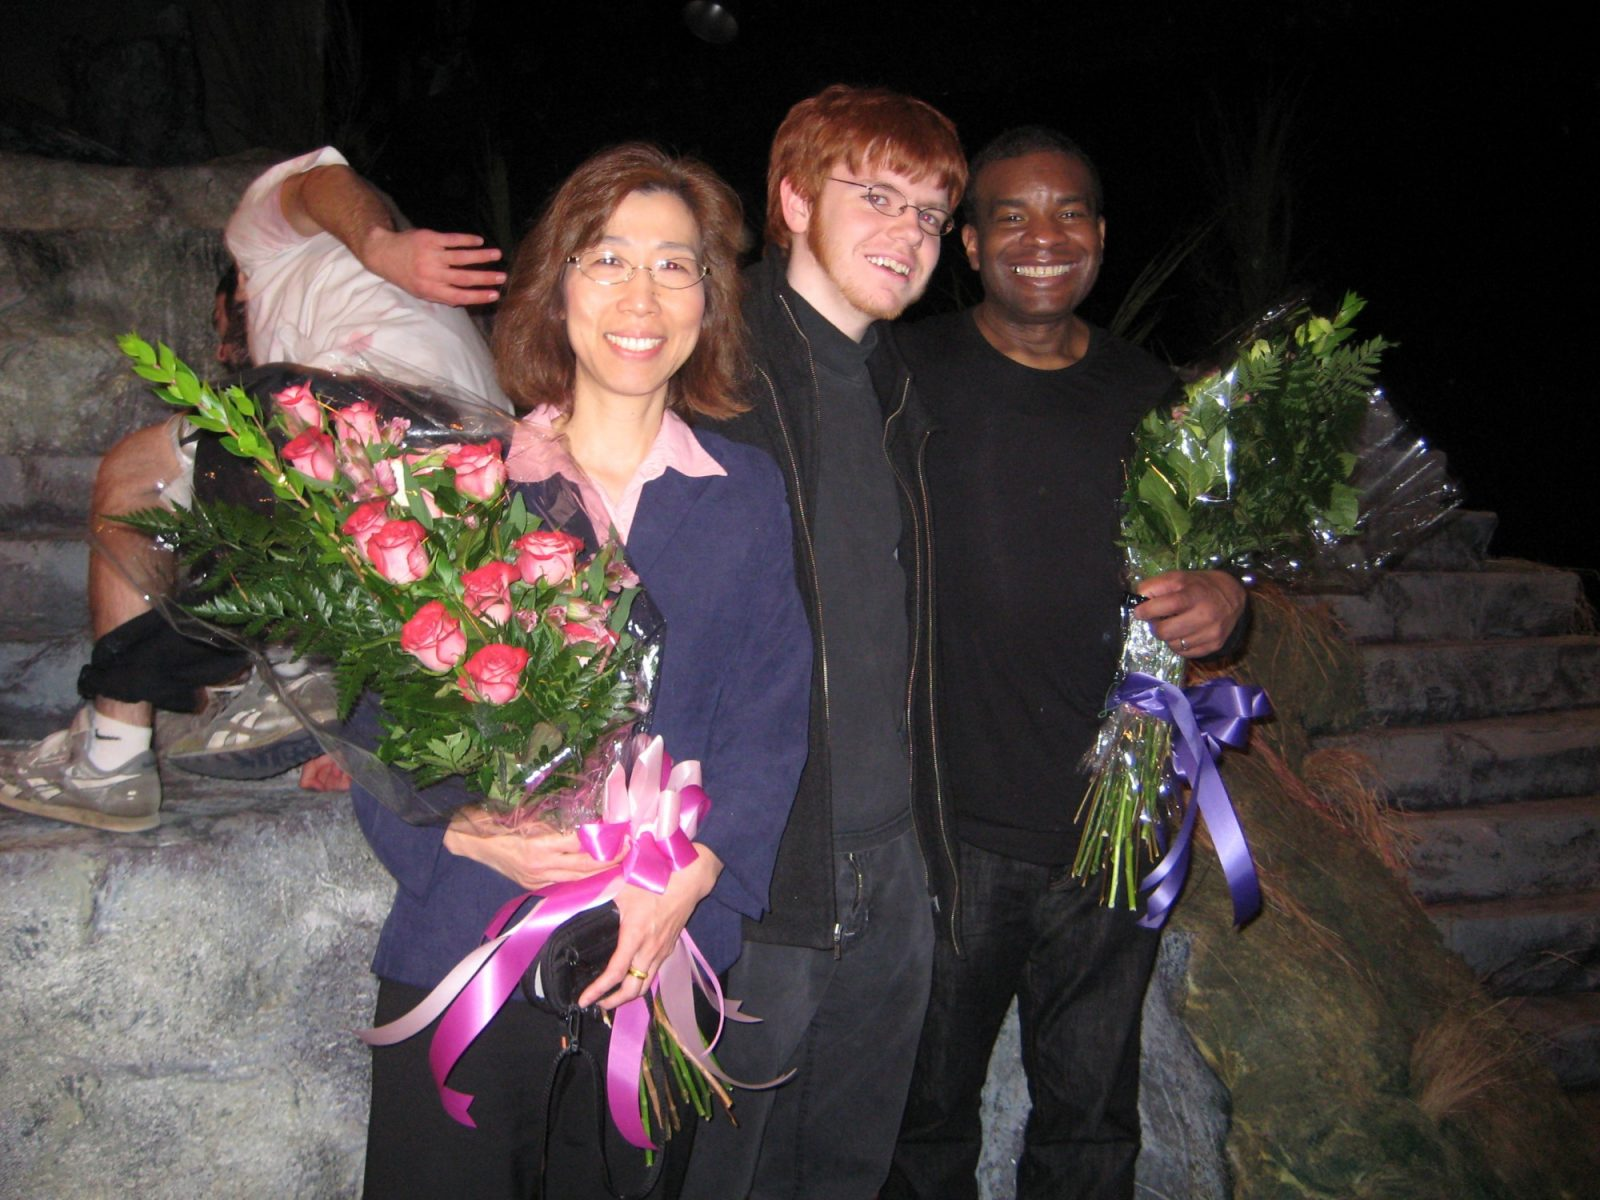 "This photo was taken at the end of the final performance of The Bacchae of Euripides by Wole Soyinka, a dance-heavy production presented by the program ""Me and My Shadow: Performing Arts in Society"" on March 15, 2008, at the Experimental Theatre. Kabby, seen here with the director Rose Jang and student stage manager Corey Crowley, choreographed and taught all the dances by mixing Ballet, modern dance, Hip Hop, and African dance style together. Contributed by Rose Jang"